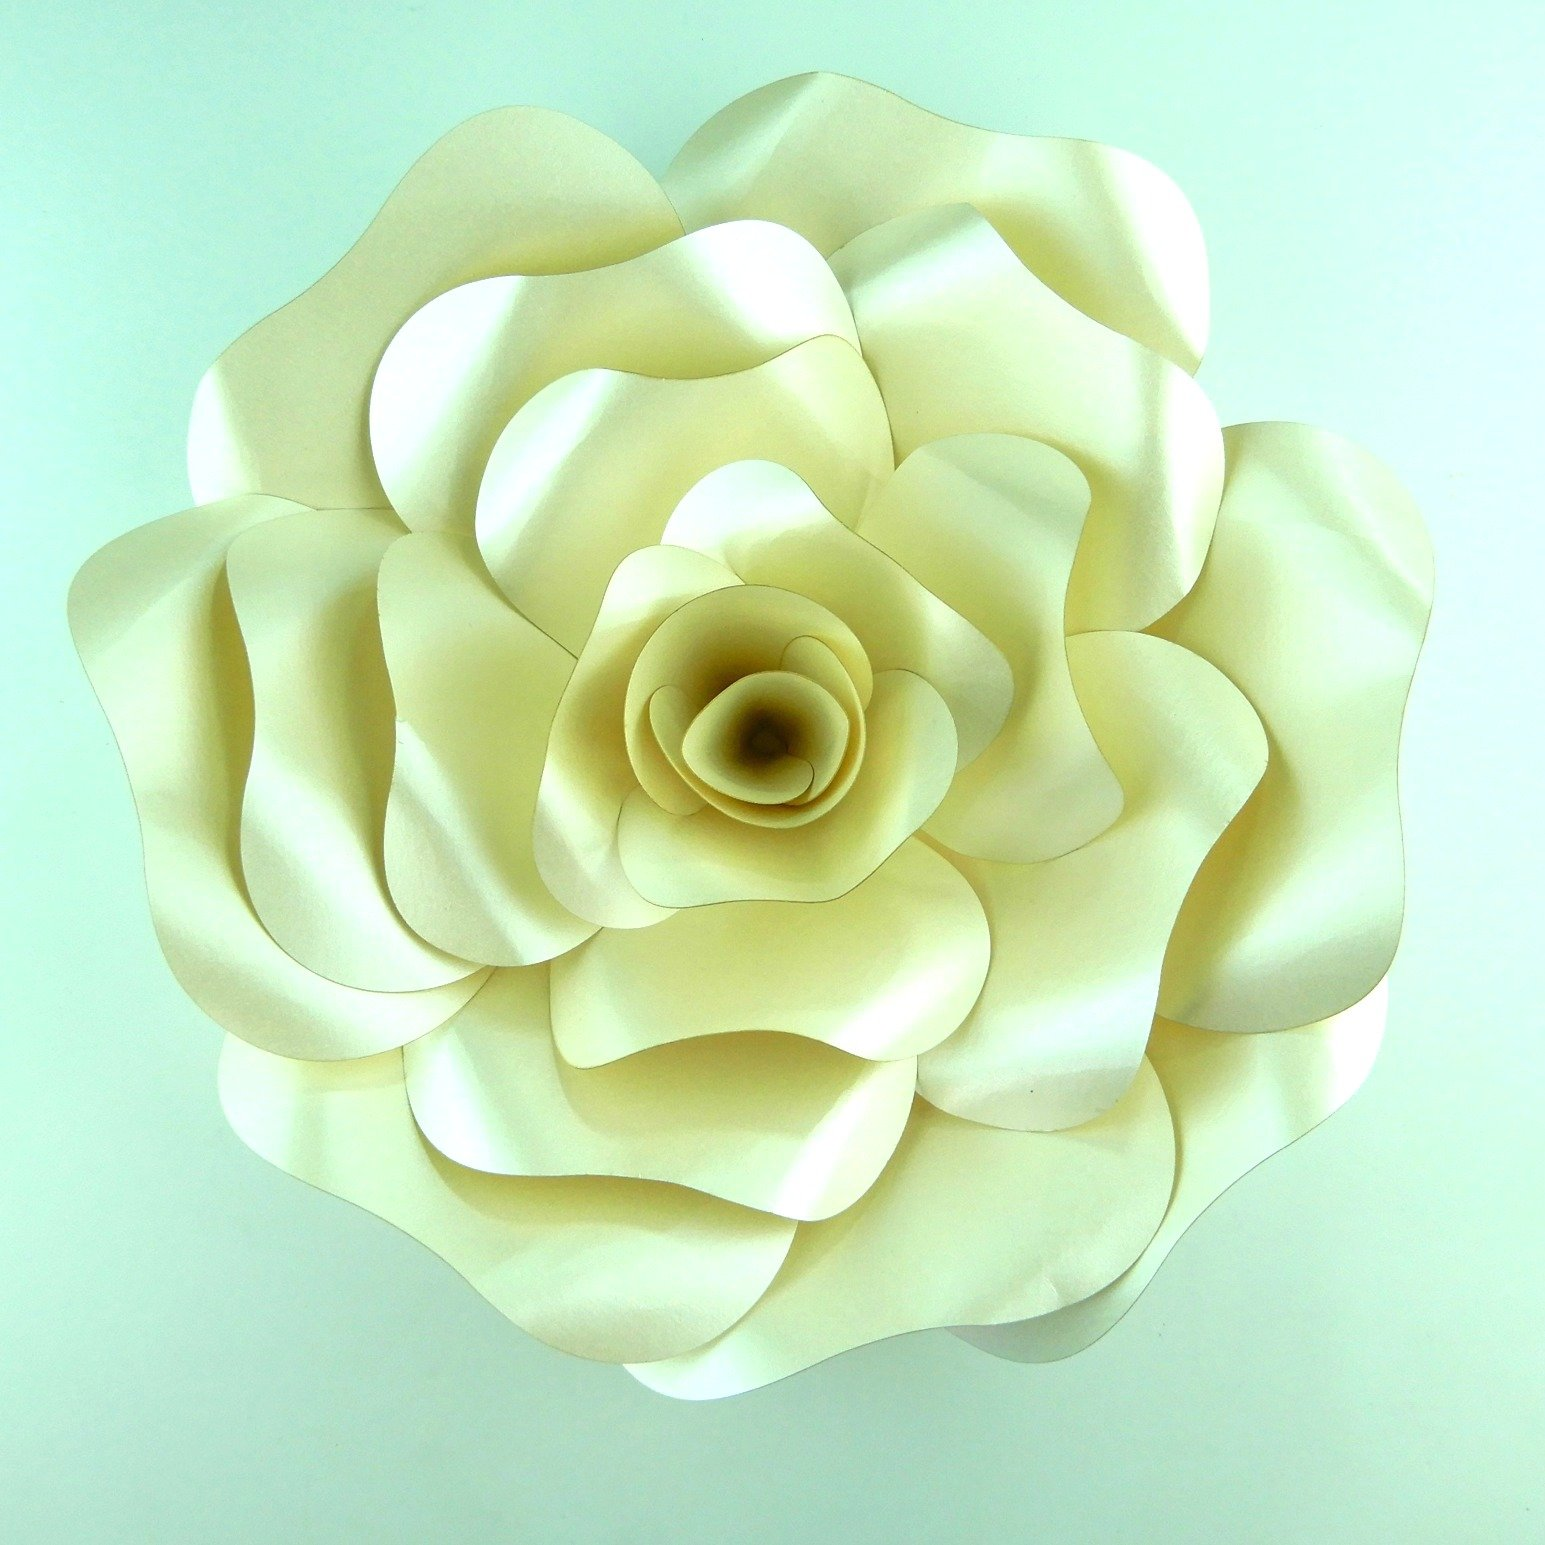 Paper Flower Template Kit Pattern DIY Make Your own Flower Backdrop Photo Booth Flower Decoration Card Stock Rose